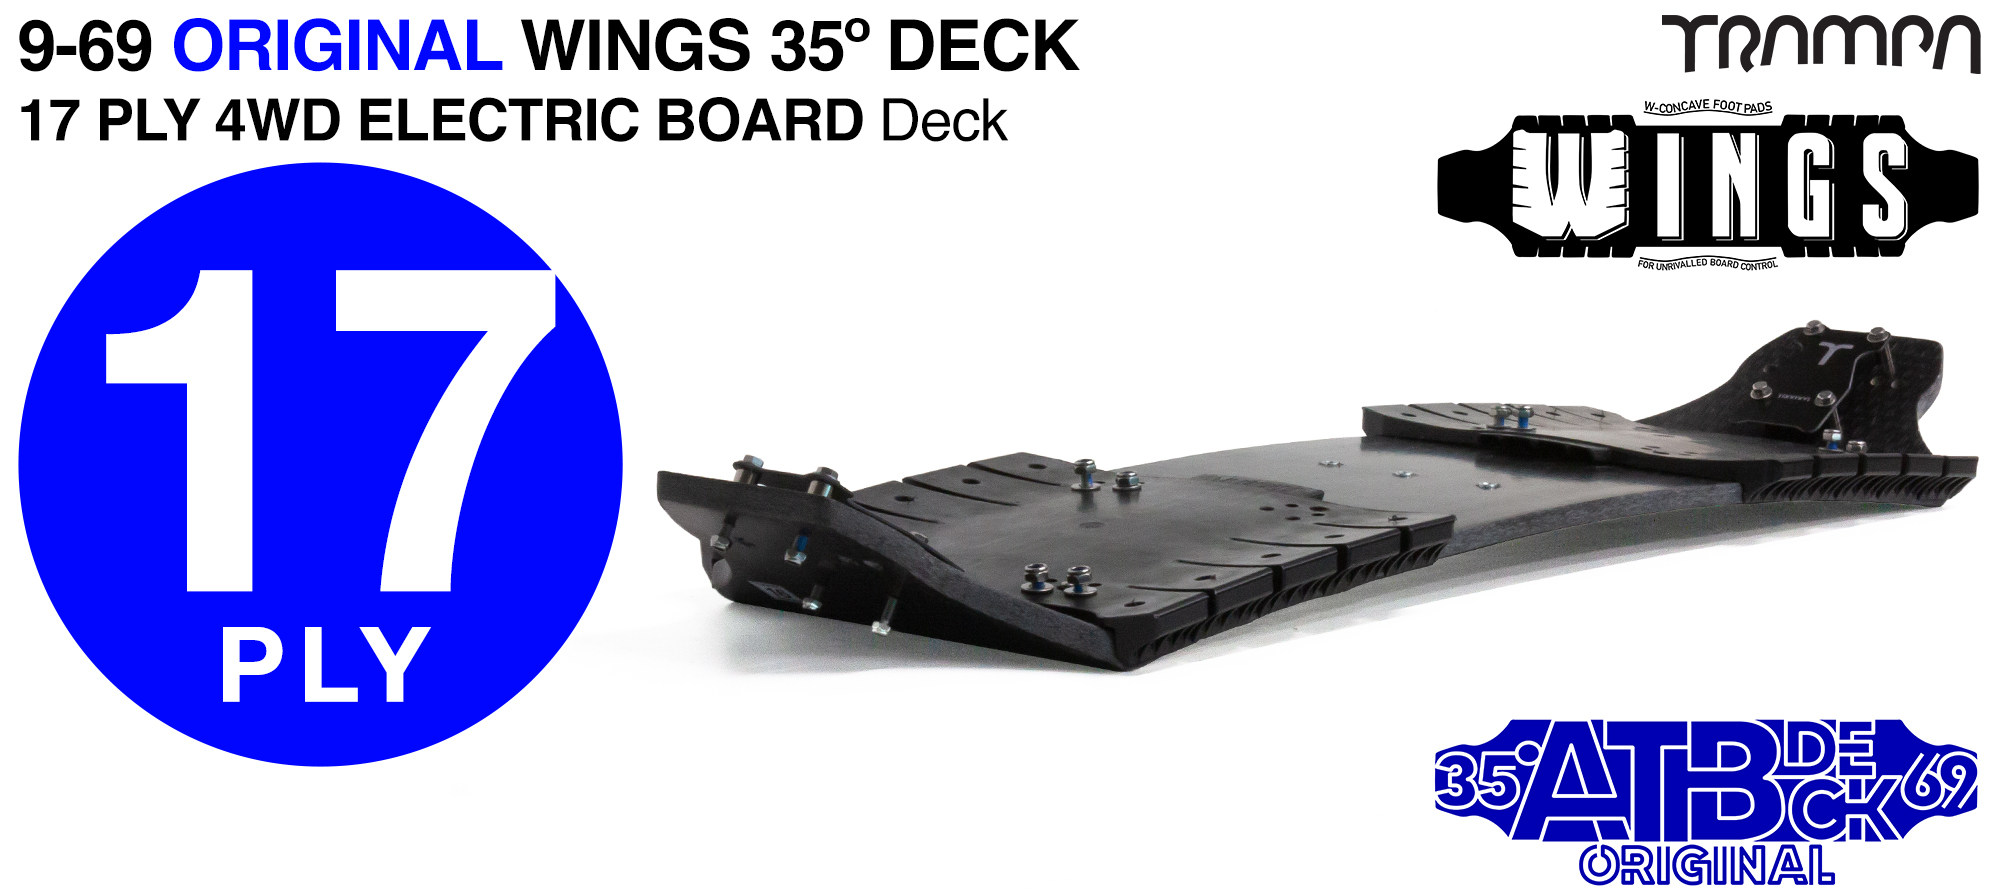 35° 9/69 TRAMPA 4WD-E WING Deck - Fix the WINGS to the deck to add W-Shape concave & the increase the width of the Deck - 17ply